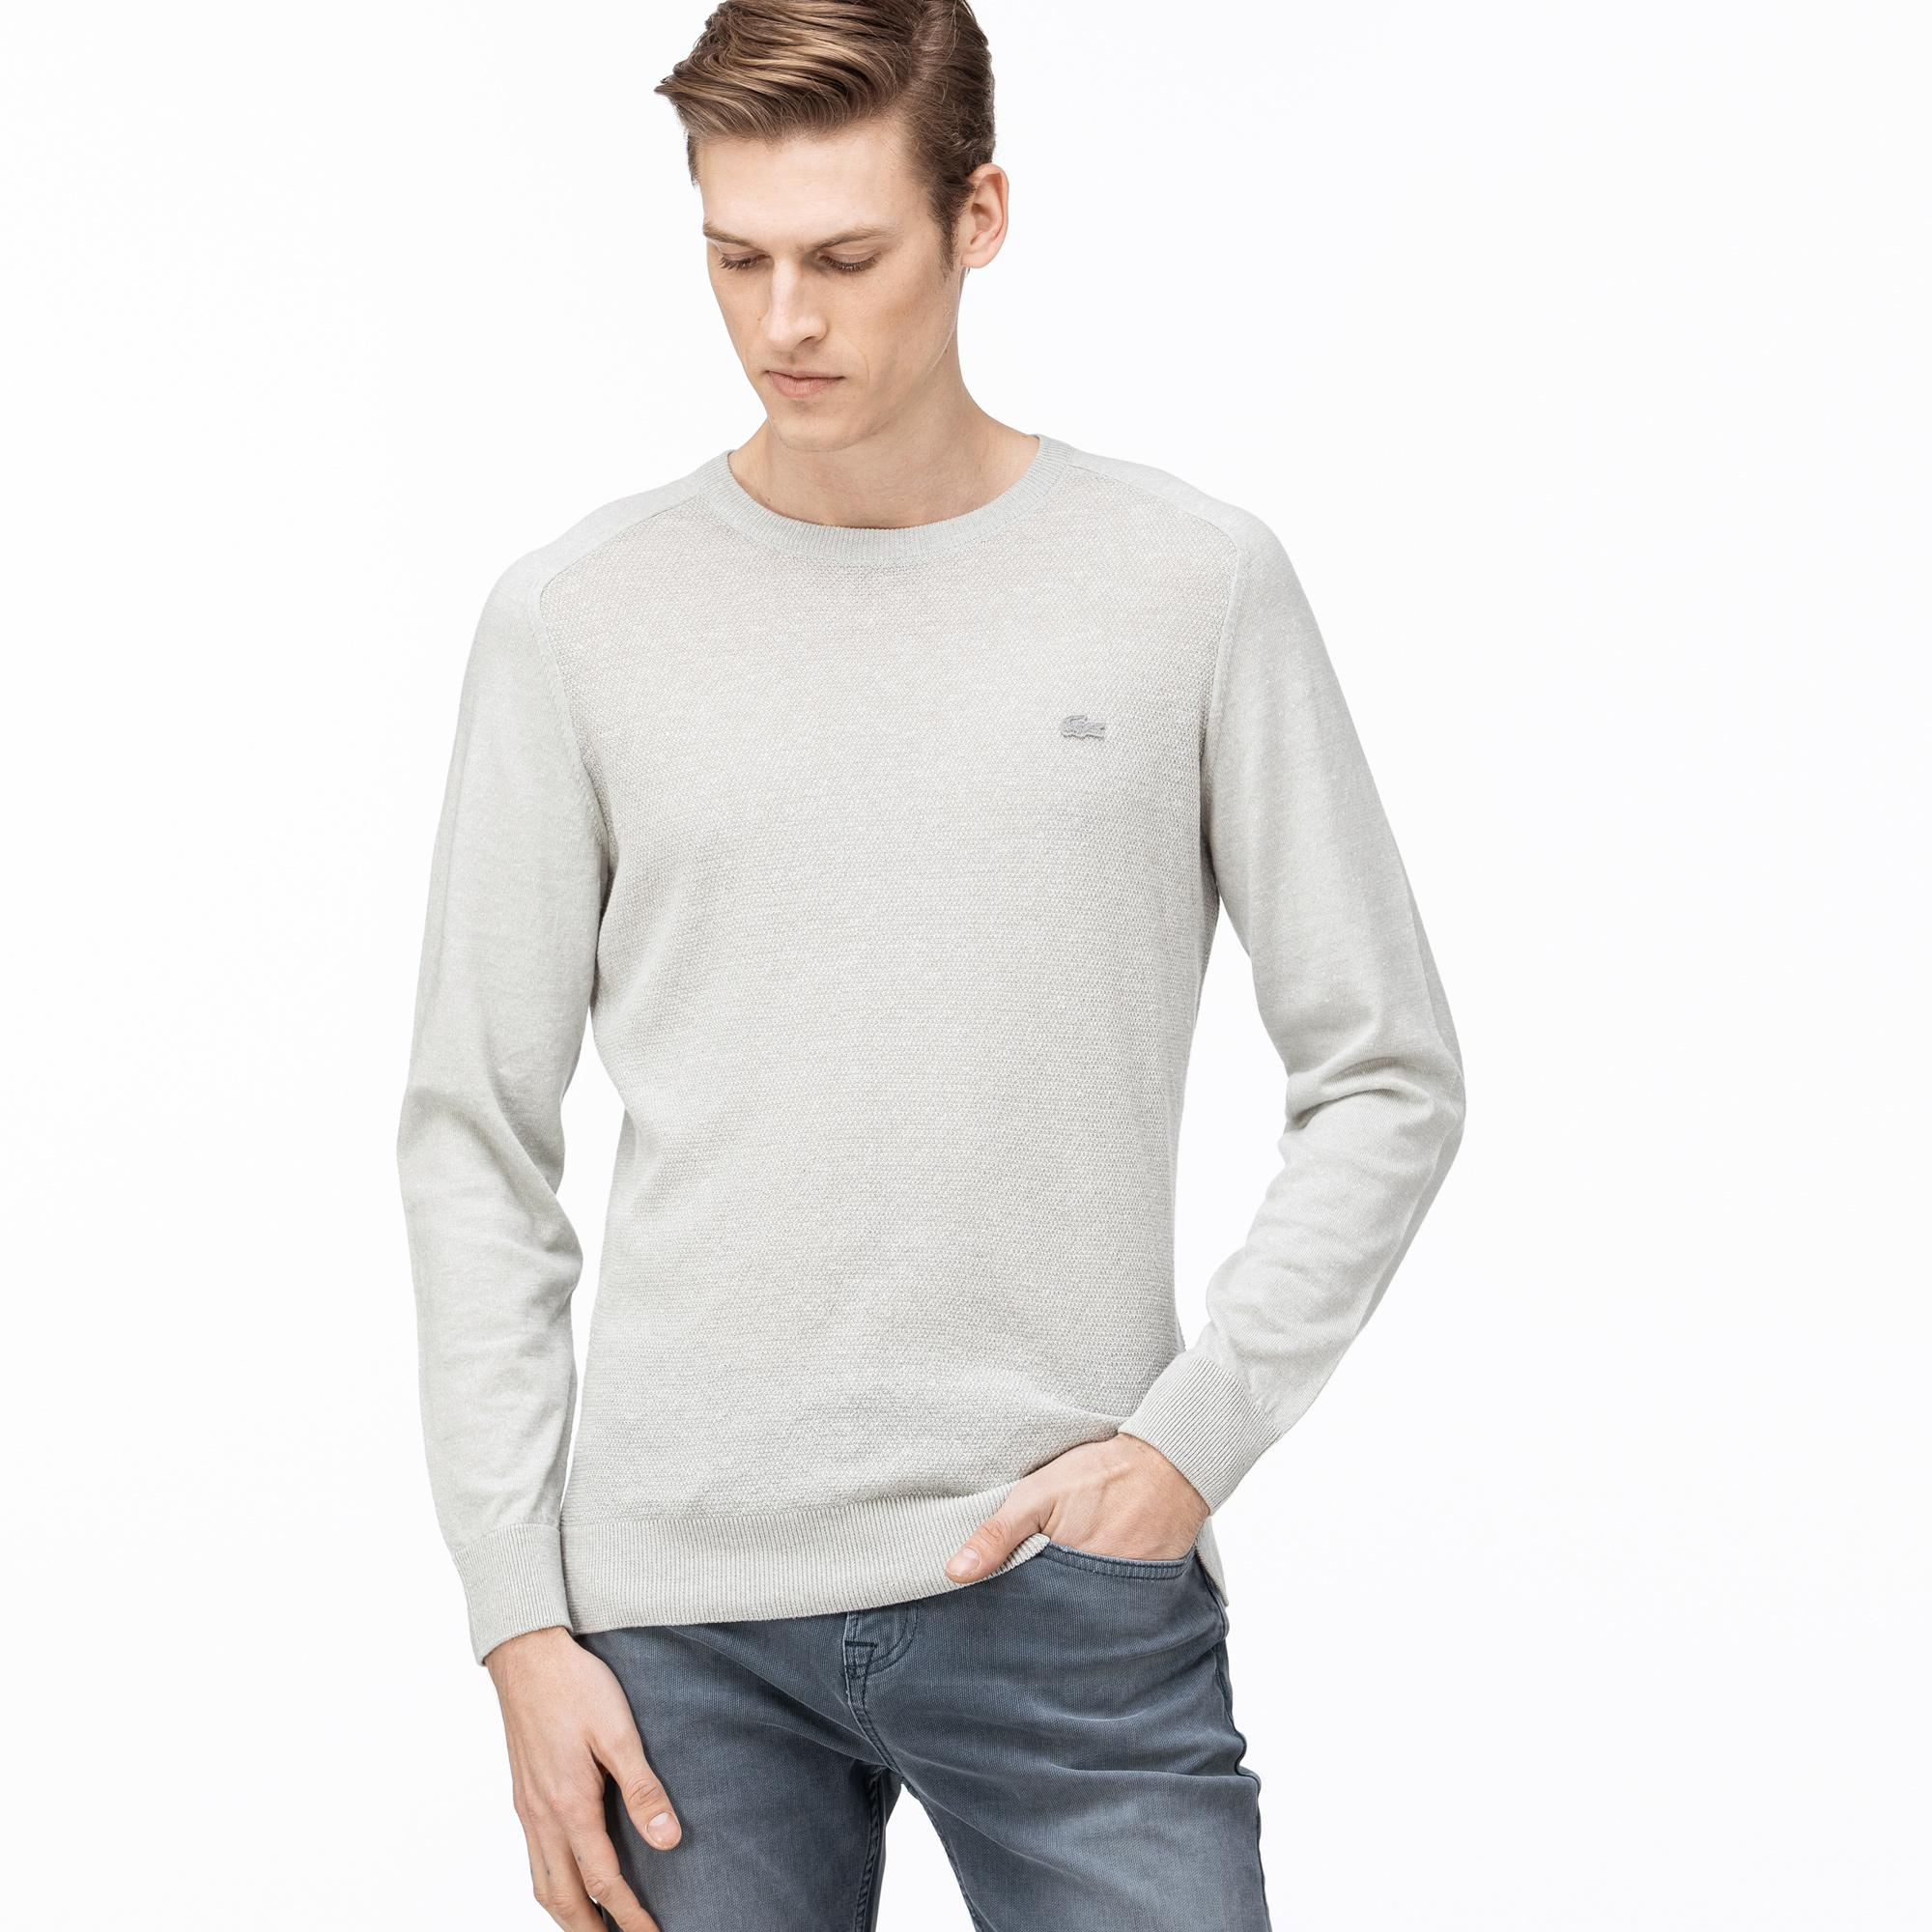 Lacoste Men's Round Neck Tricot Sweater